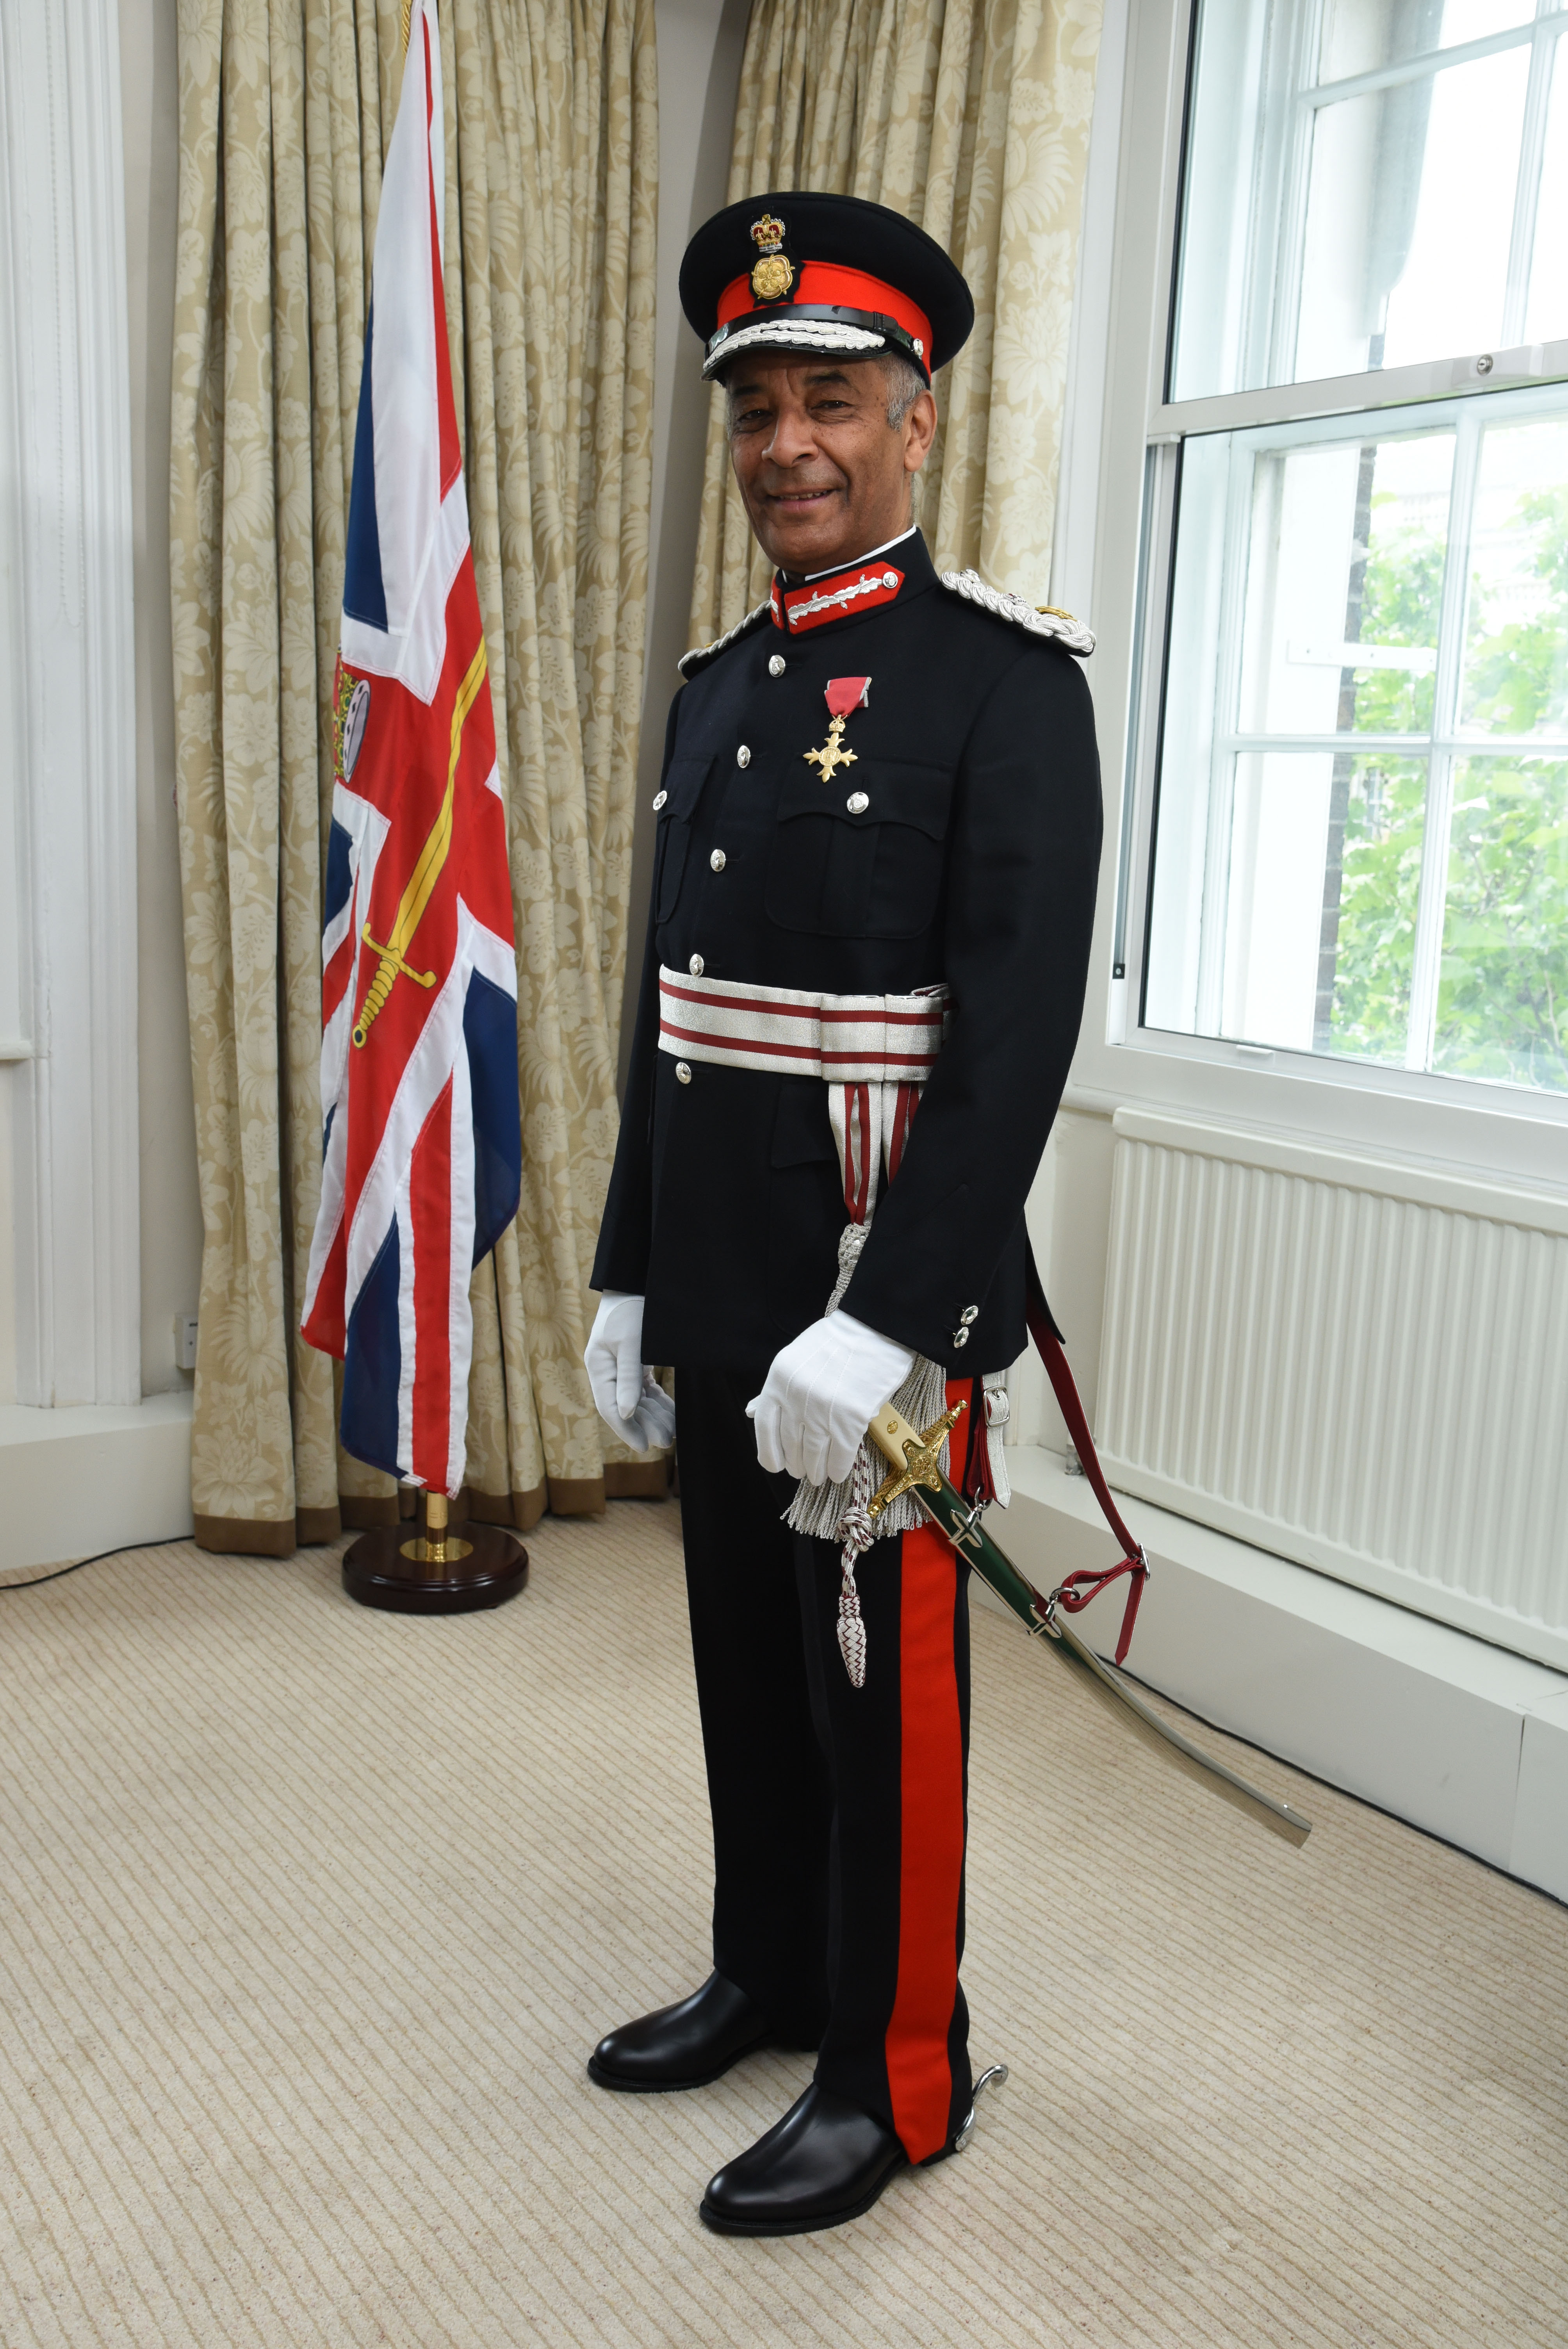 How to write to a lord lieutenant